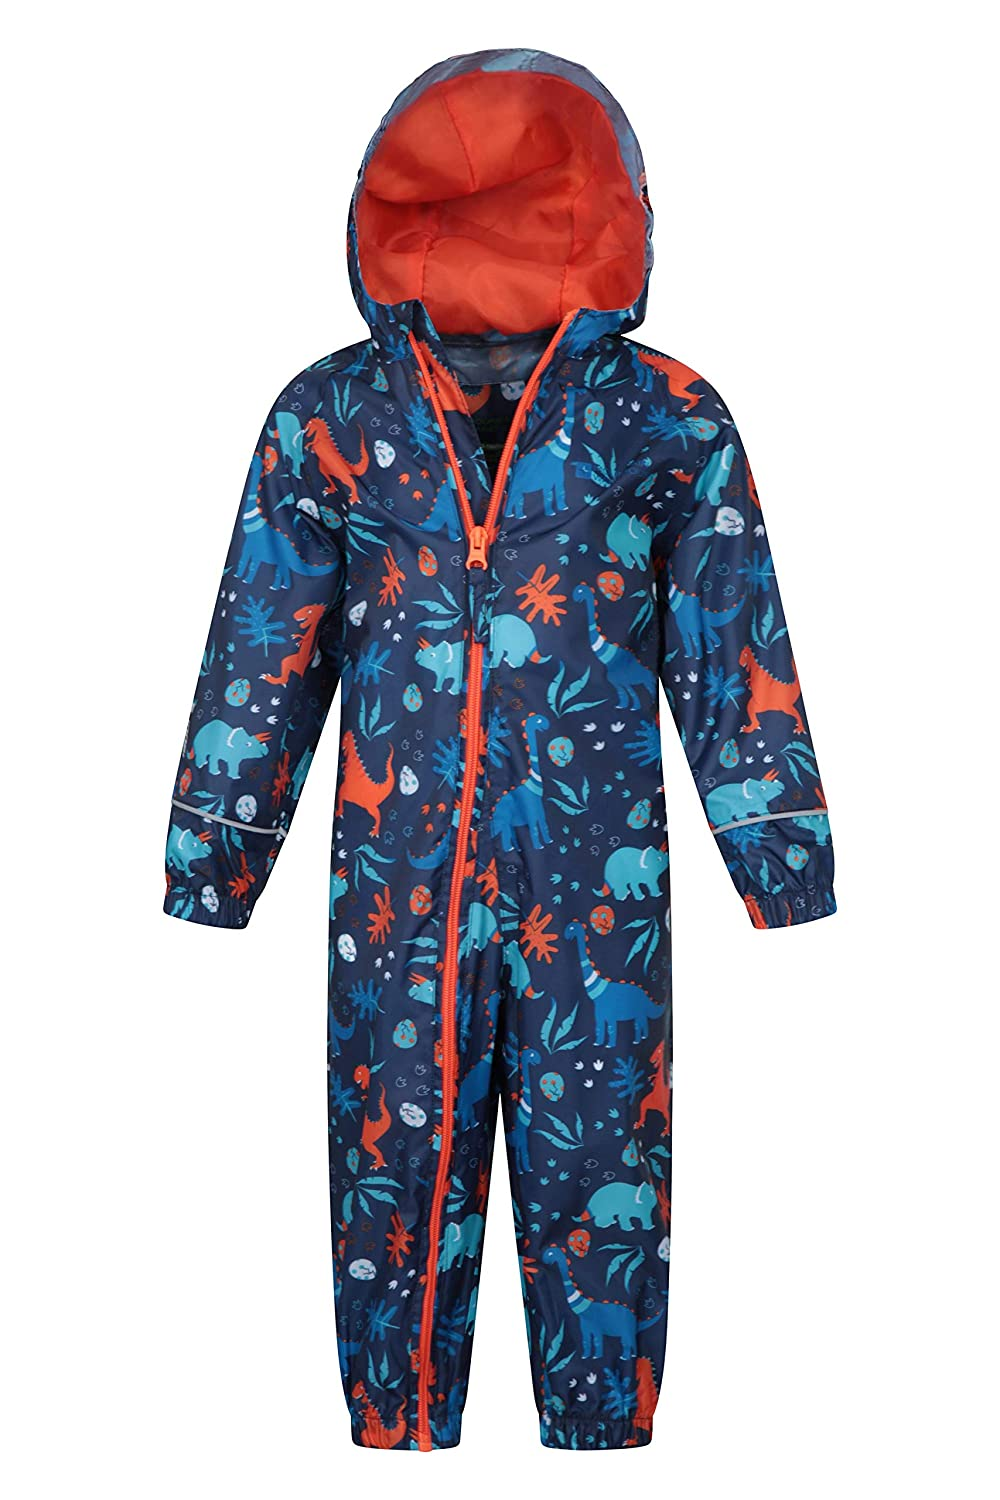 High Vis Suit Mountain Warehouse Puddle Kids Printed Rain Suit Waterproof Childrens Rain Coat Taped Seams Suit Breathable Waterproof Coat for Travelling Blue 6-12 Months